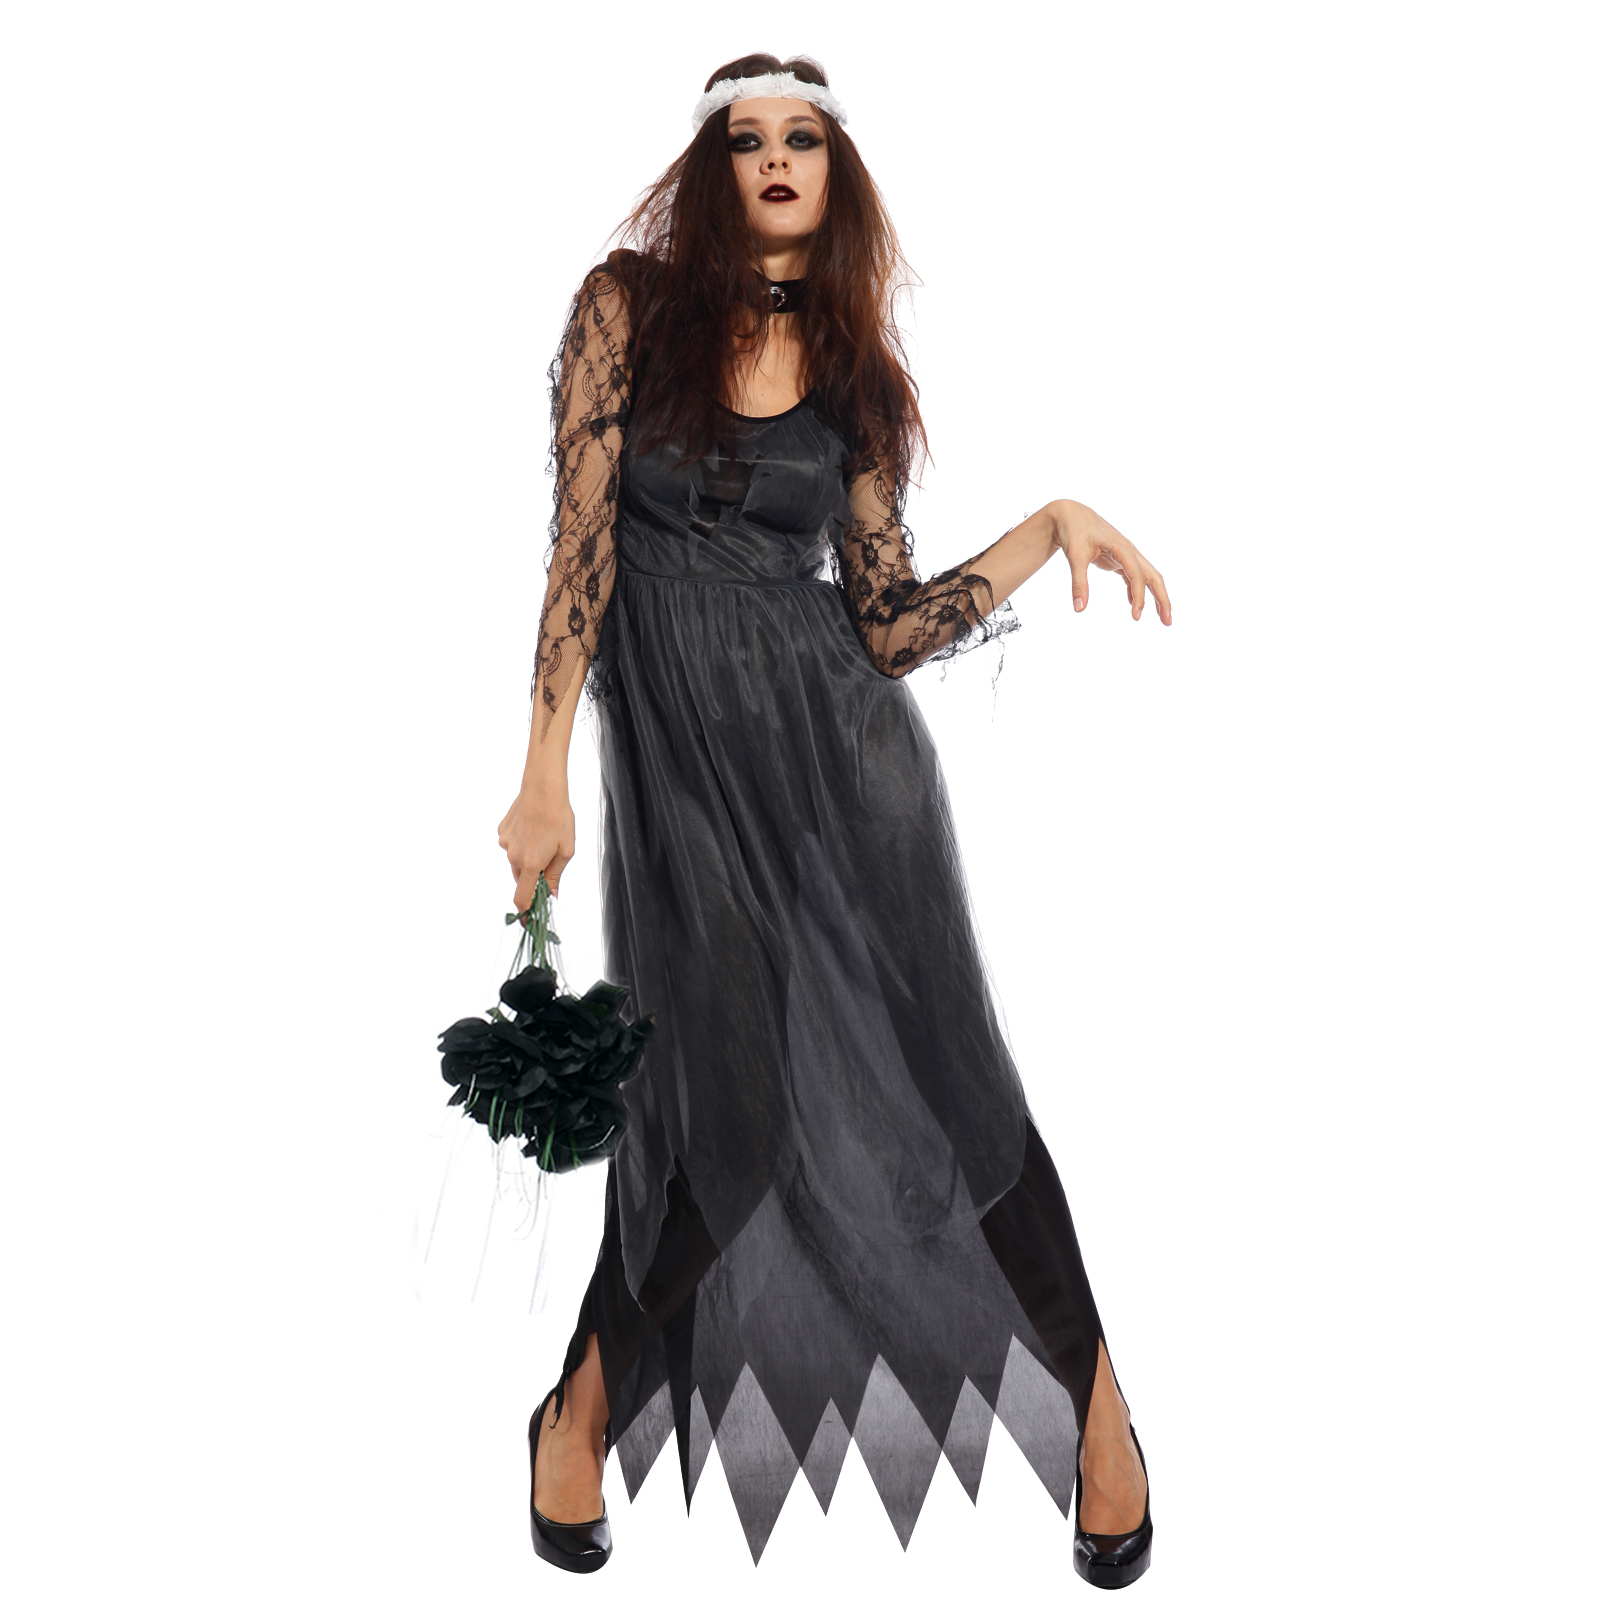 Ladies halloween horror zombie corpse bride dead scary for Corpse bride wedding dress for sale